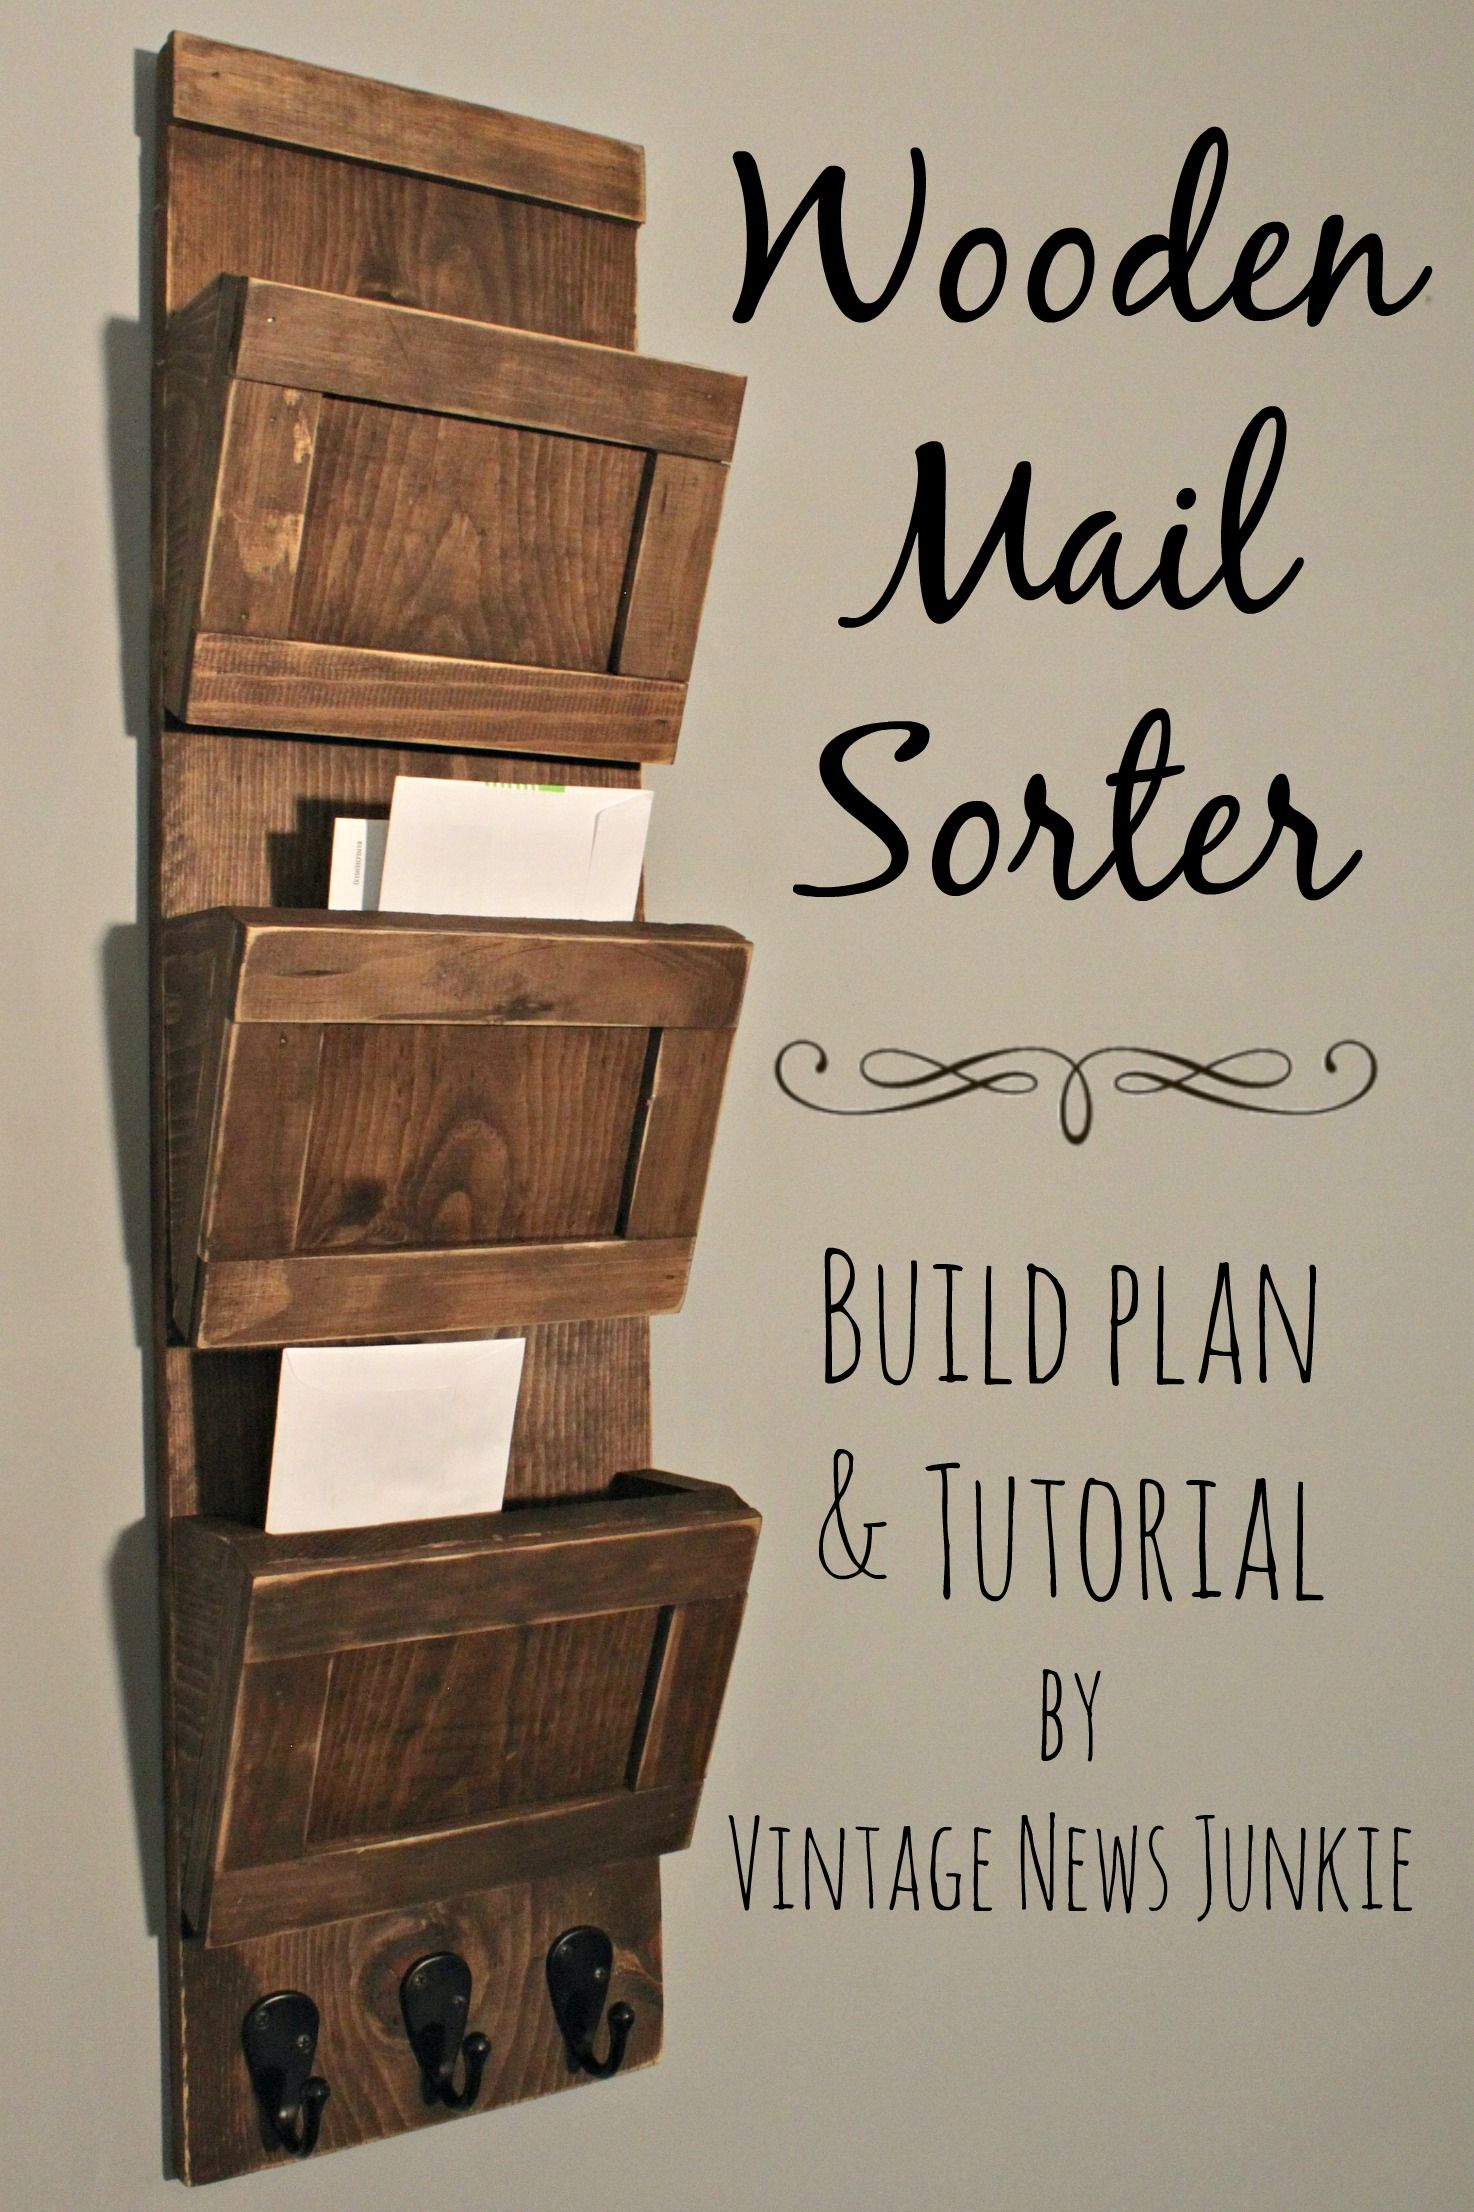 awesome step by step video tutorial best of pinterest diy wooden mail sorter tutorial 40 rustic home decor ideas you can build yourself